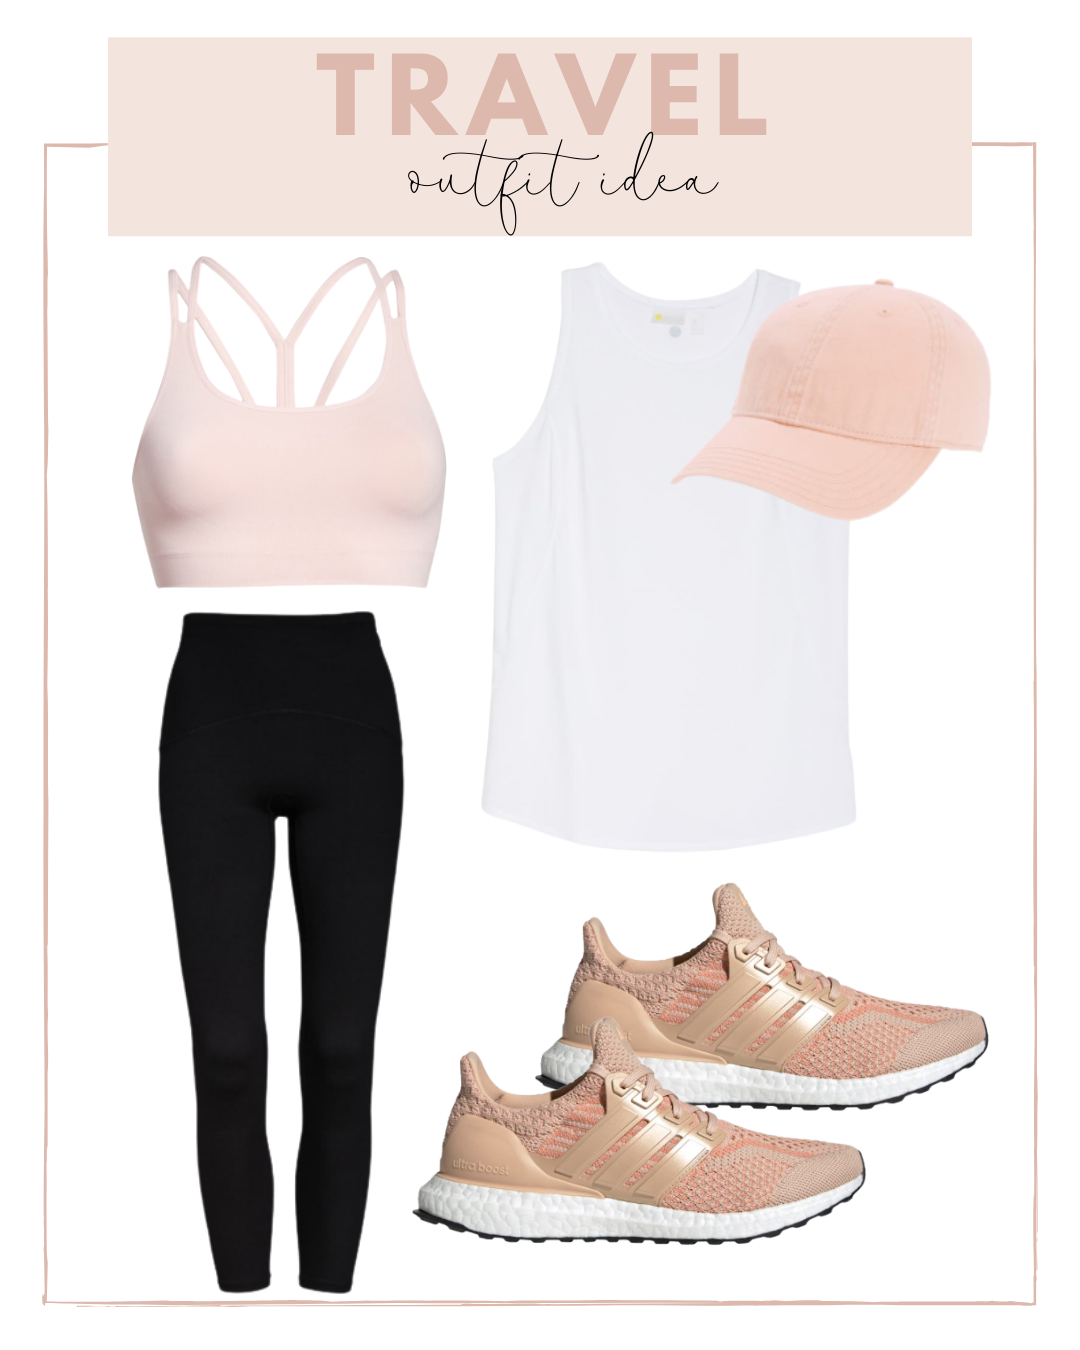 Athleisure outfits for traveling